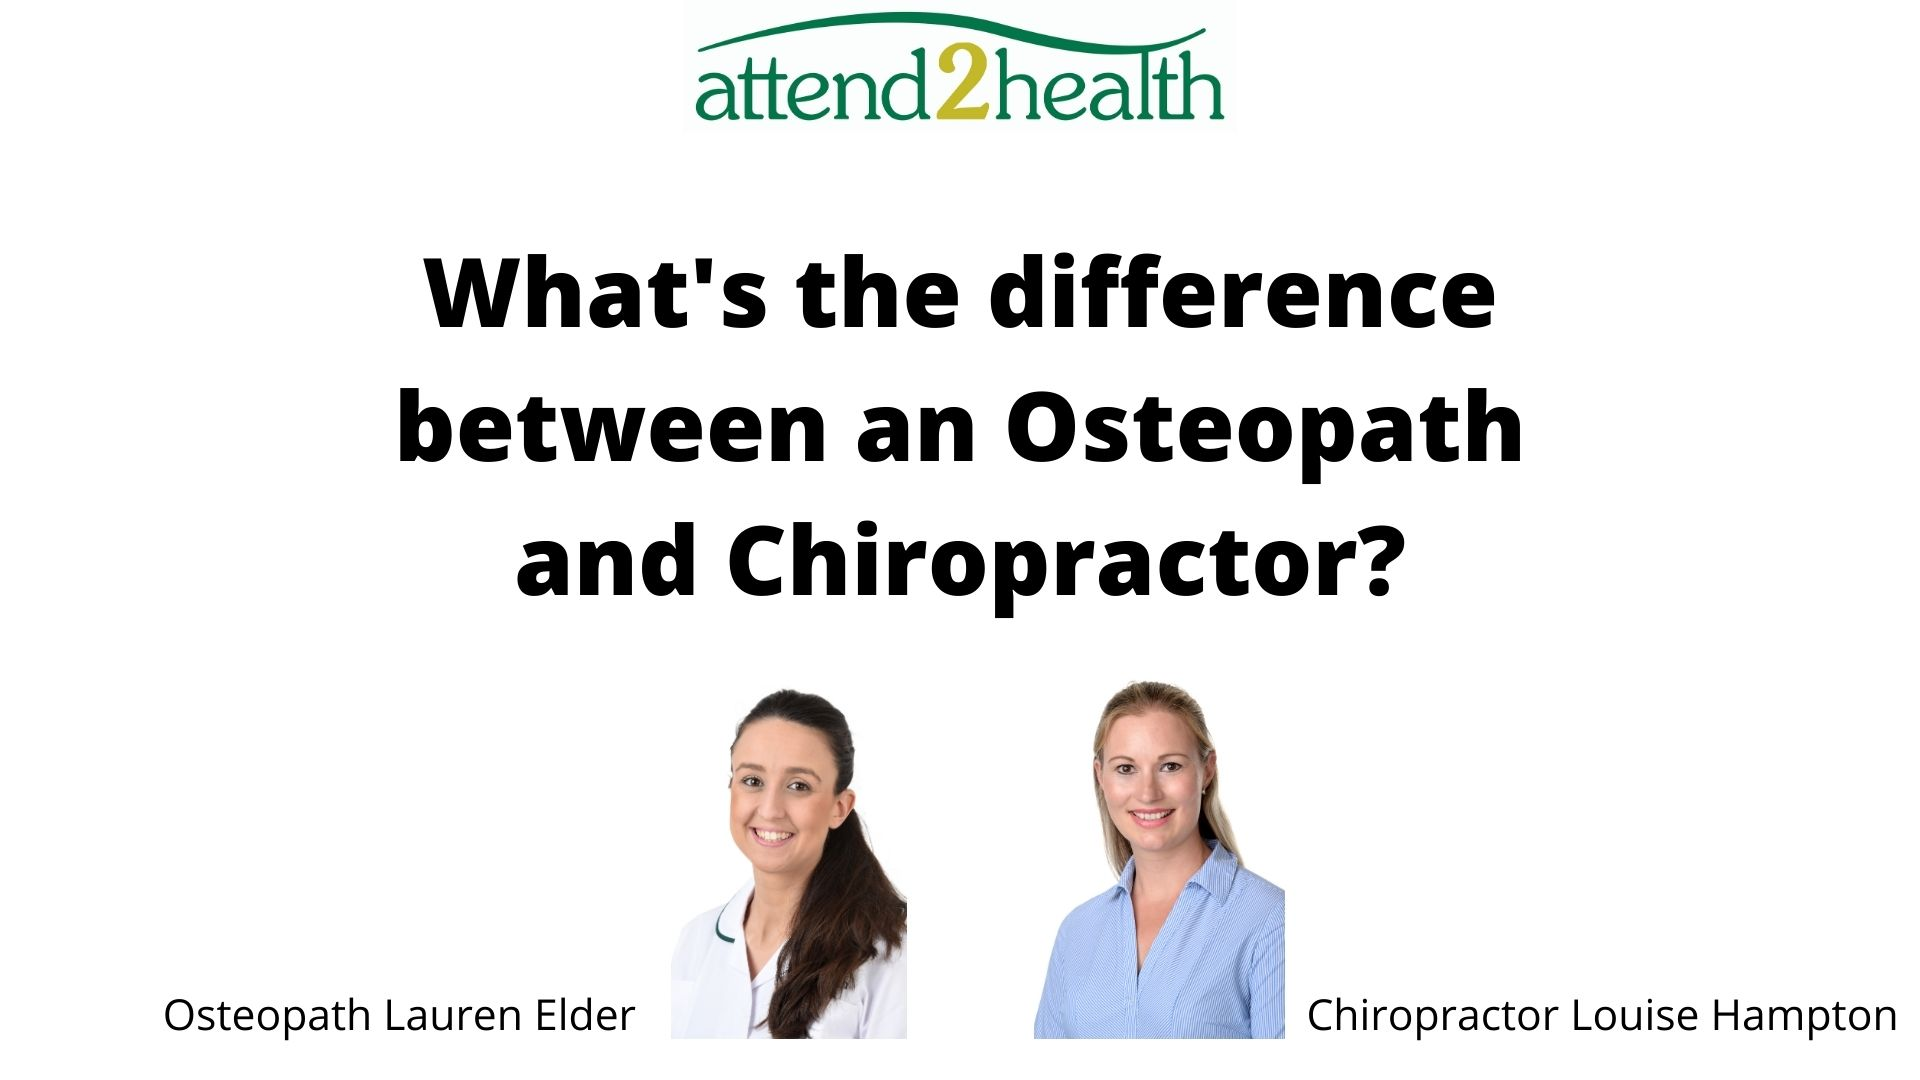 What's the difference between an Osteopath and Chiropractor?